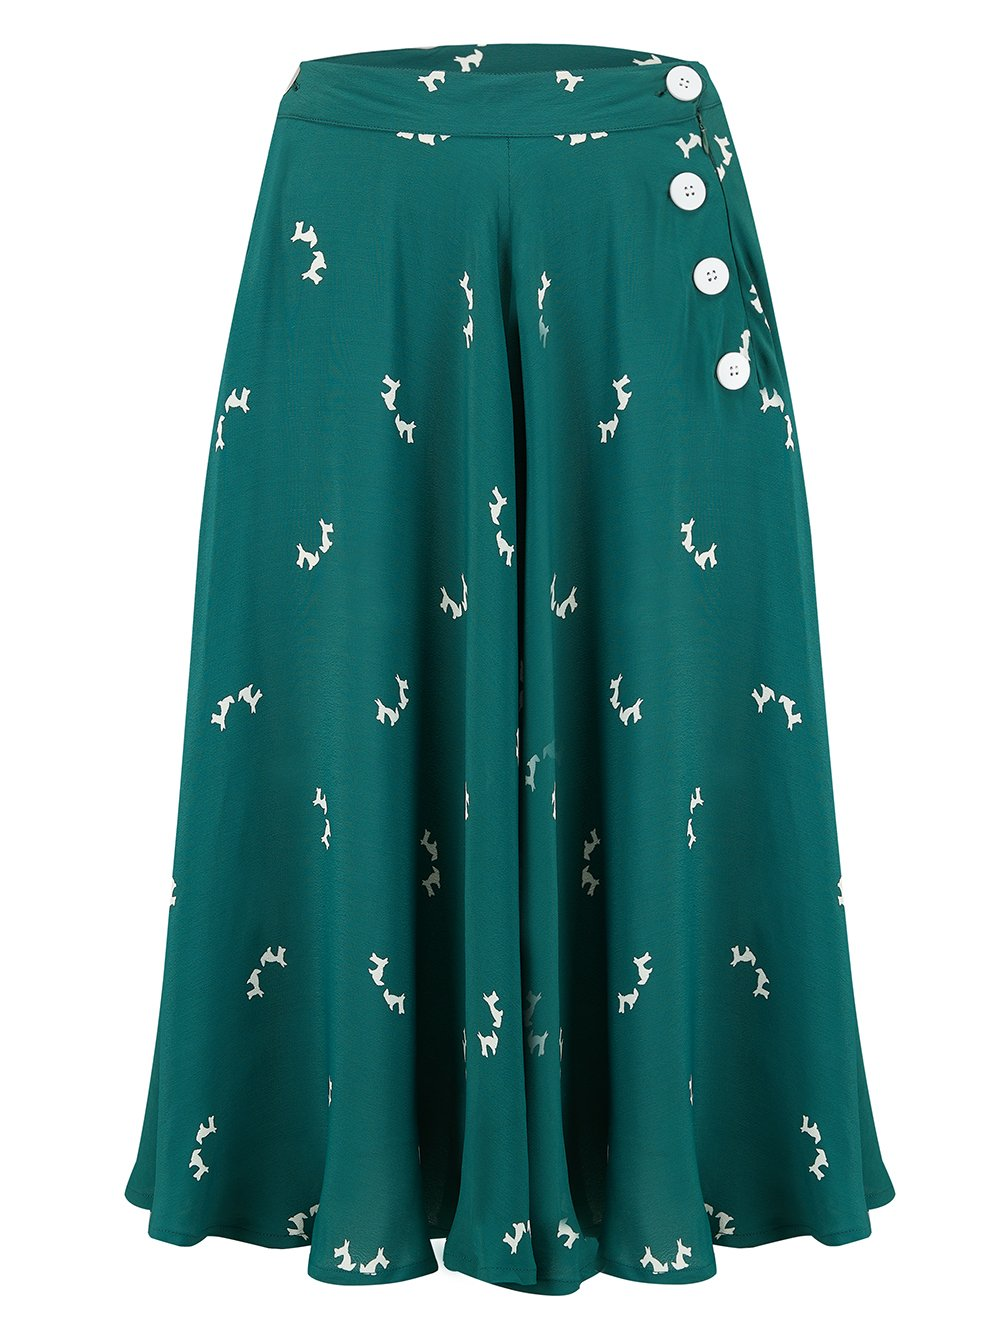 """Isabelle"" Skirt in Vintage Green with Doggy Print by The Seamstress of Bloomsbury, Classic & Authentic 1940s Vintage Inspired Style"